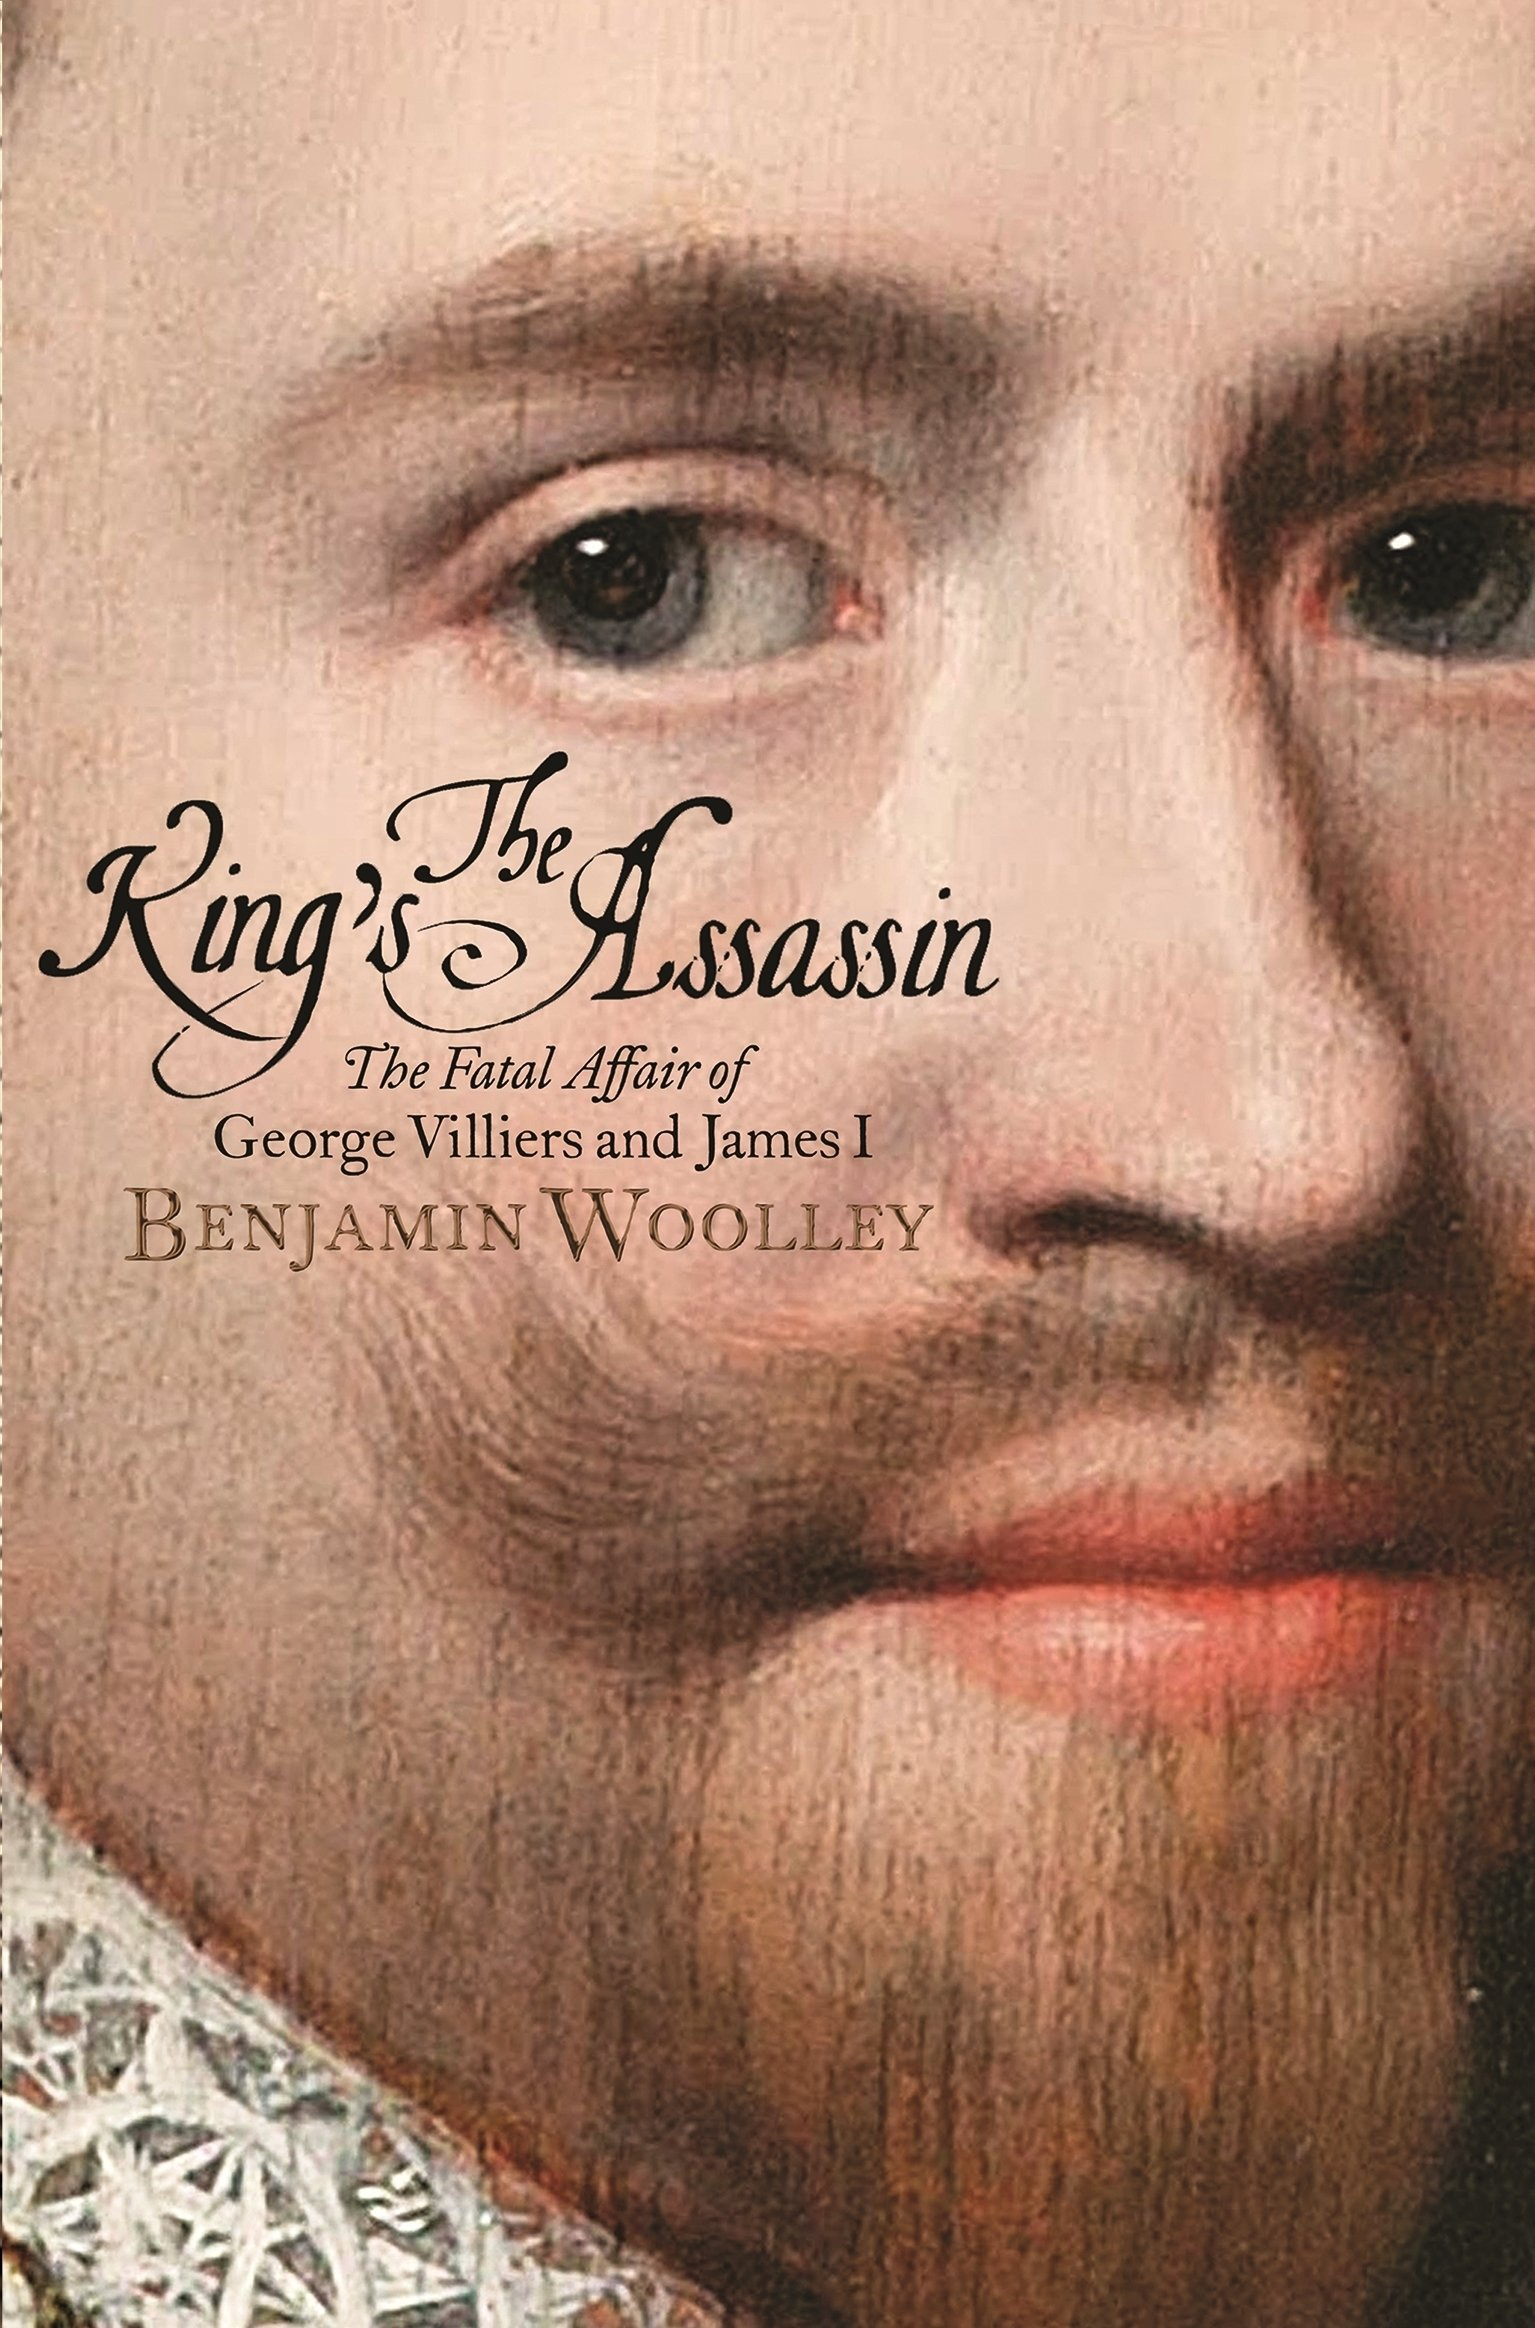 Kings Assassin: The Fatal Affair of George Villiers and James I